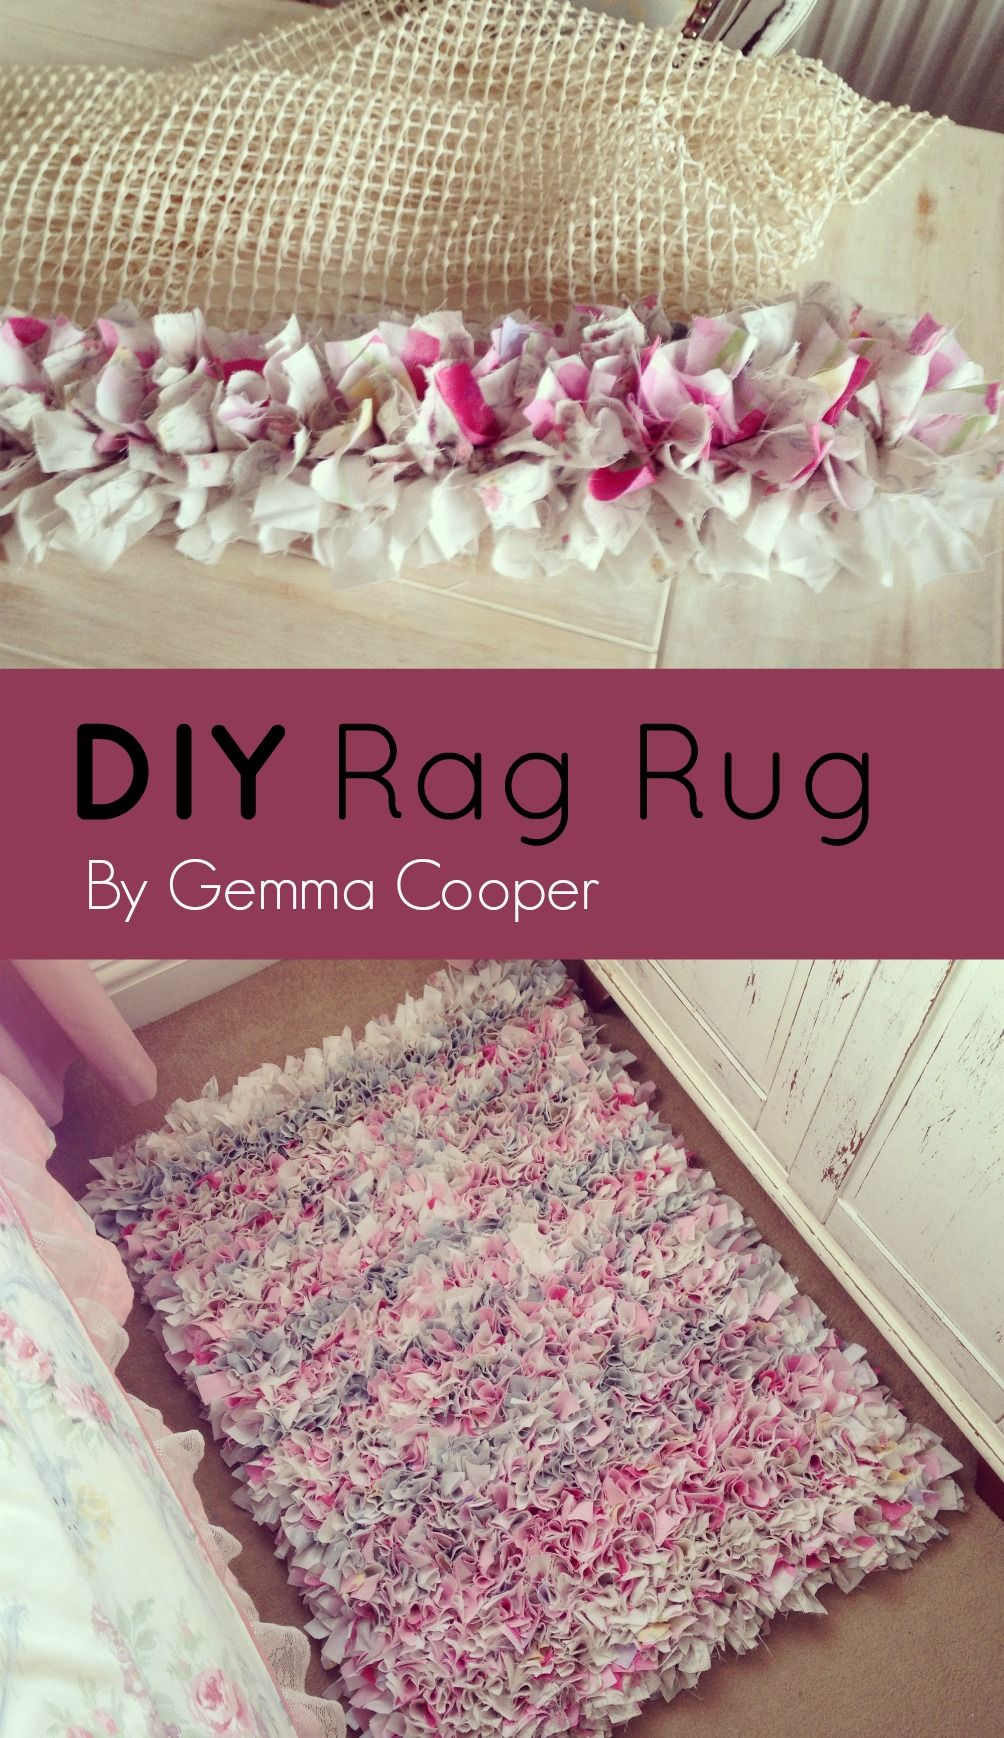 How To Make A Diy Rag Rug Using Old Bedding